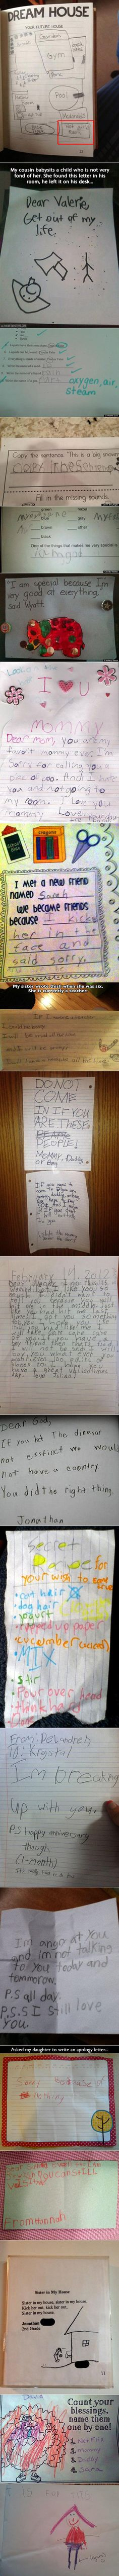 We have rounded up some funny and unusual, yet real, notes from geeky kids.